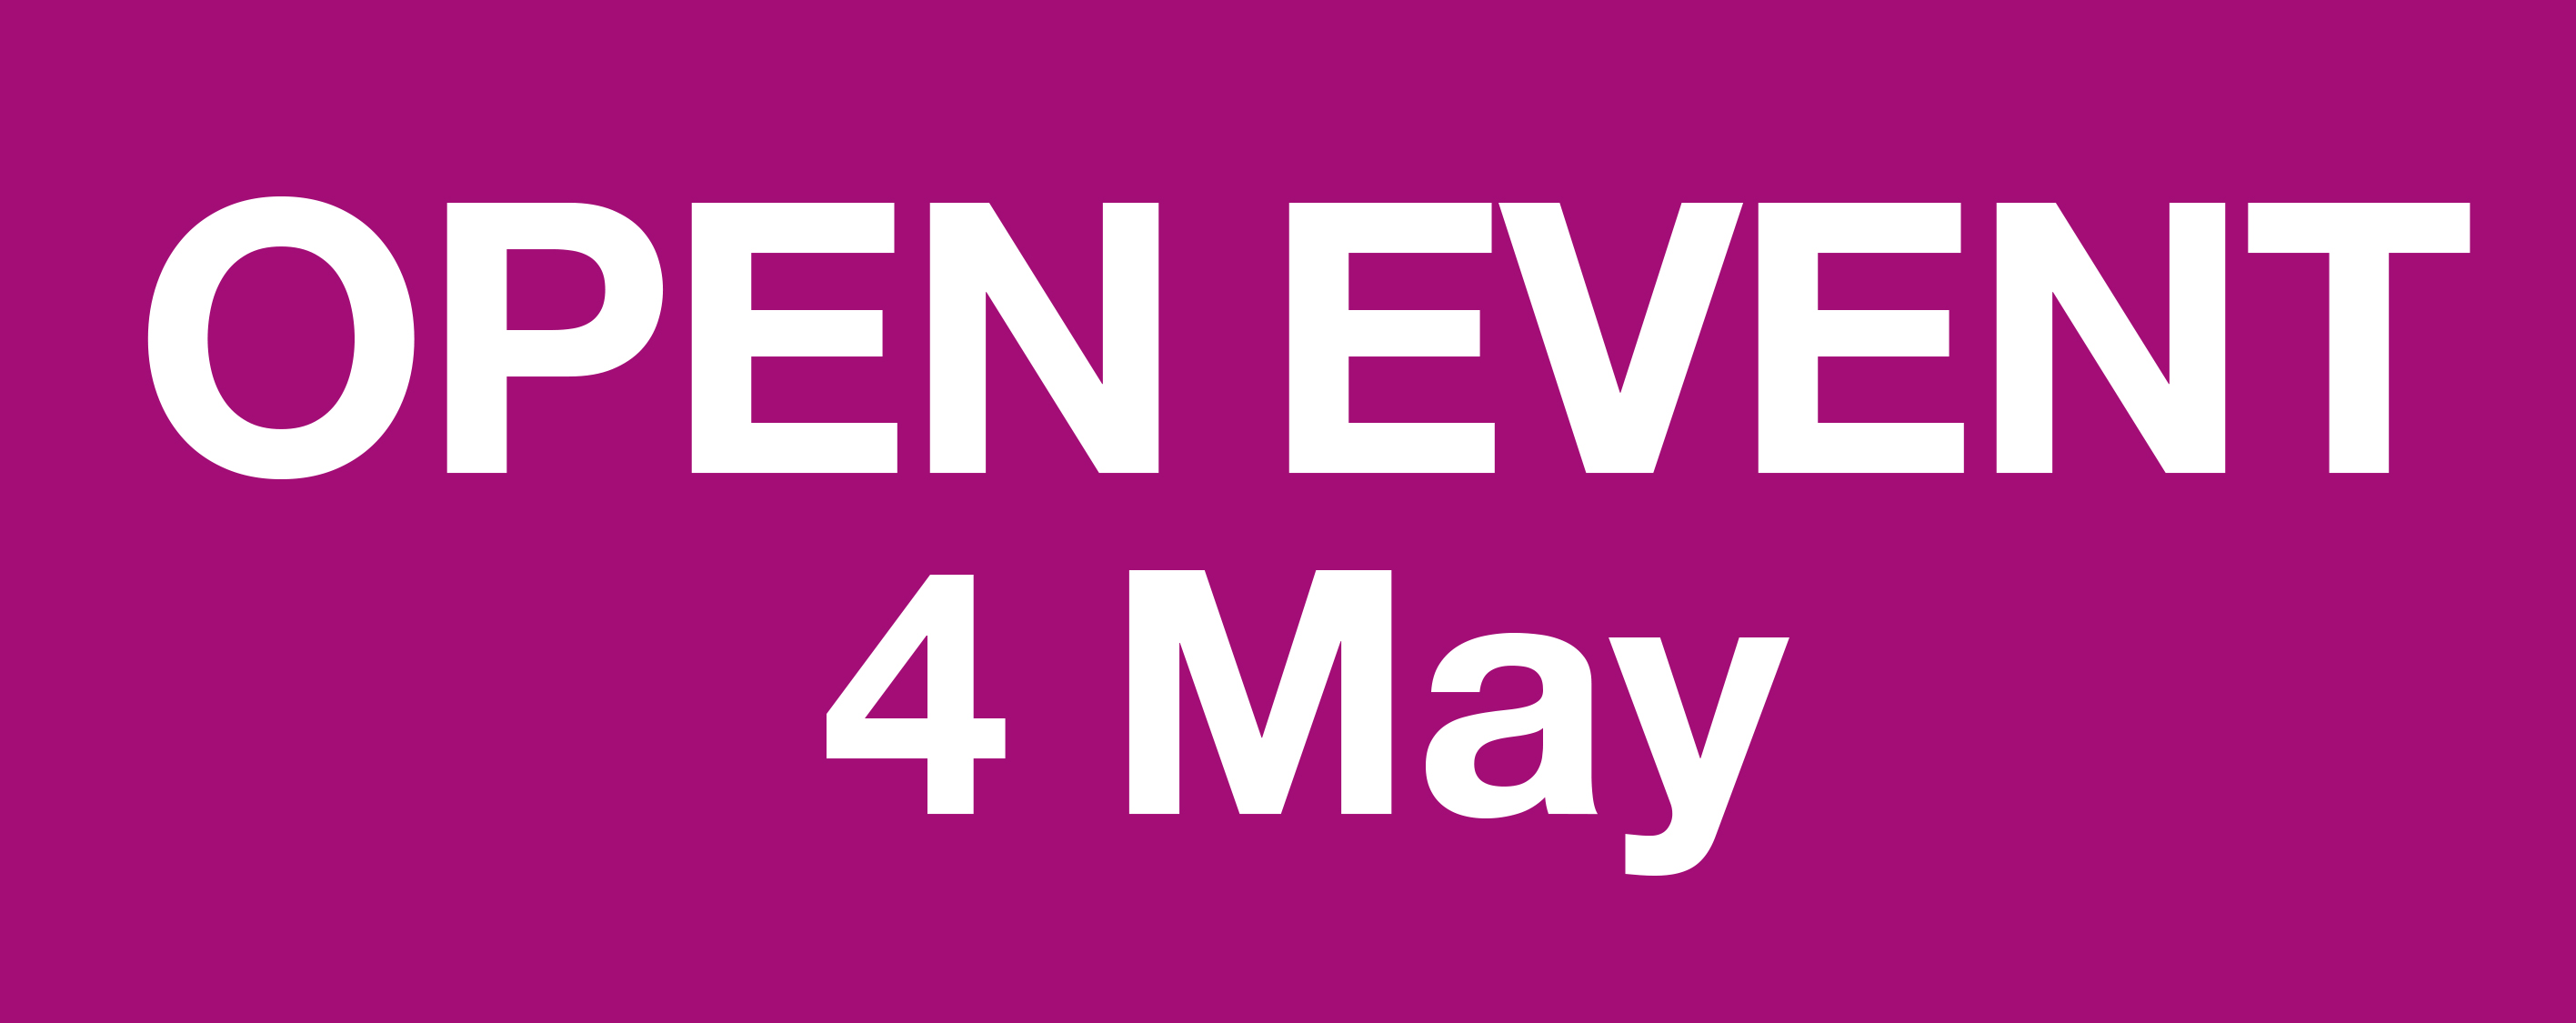 Open Event - May 4th 2017